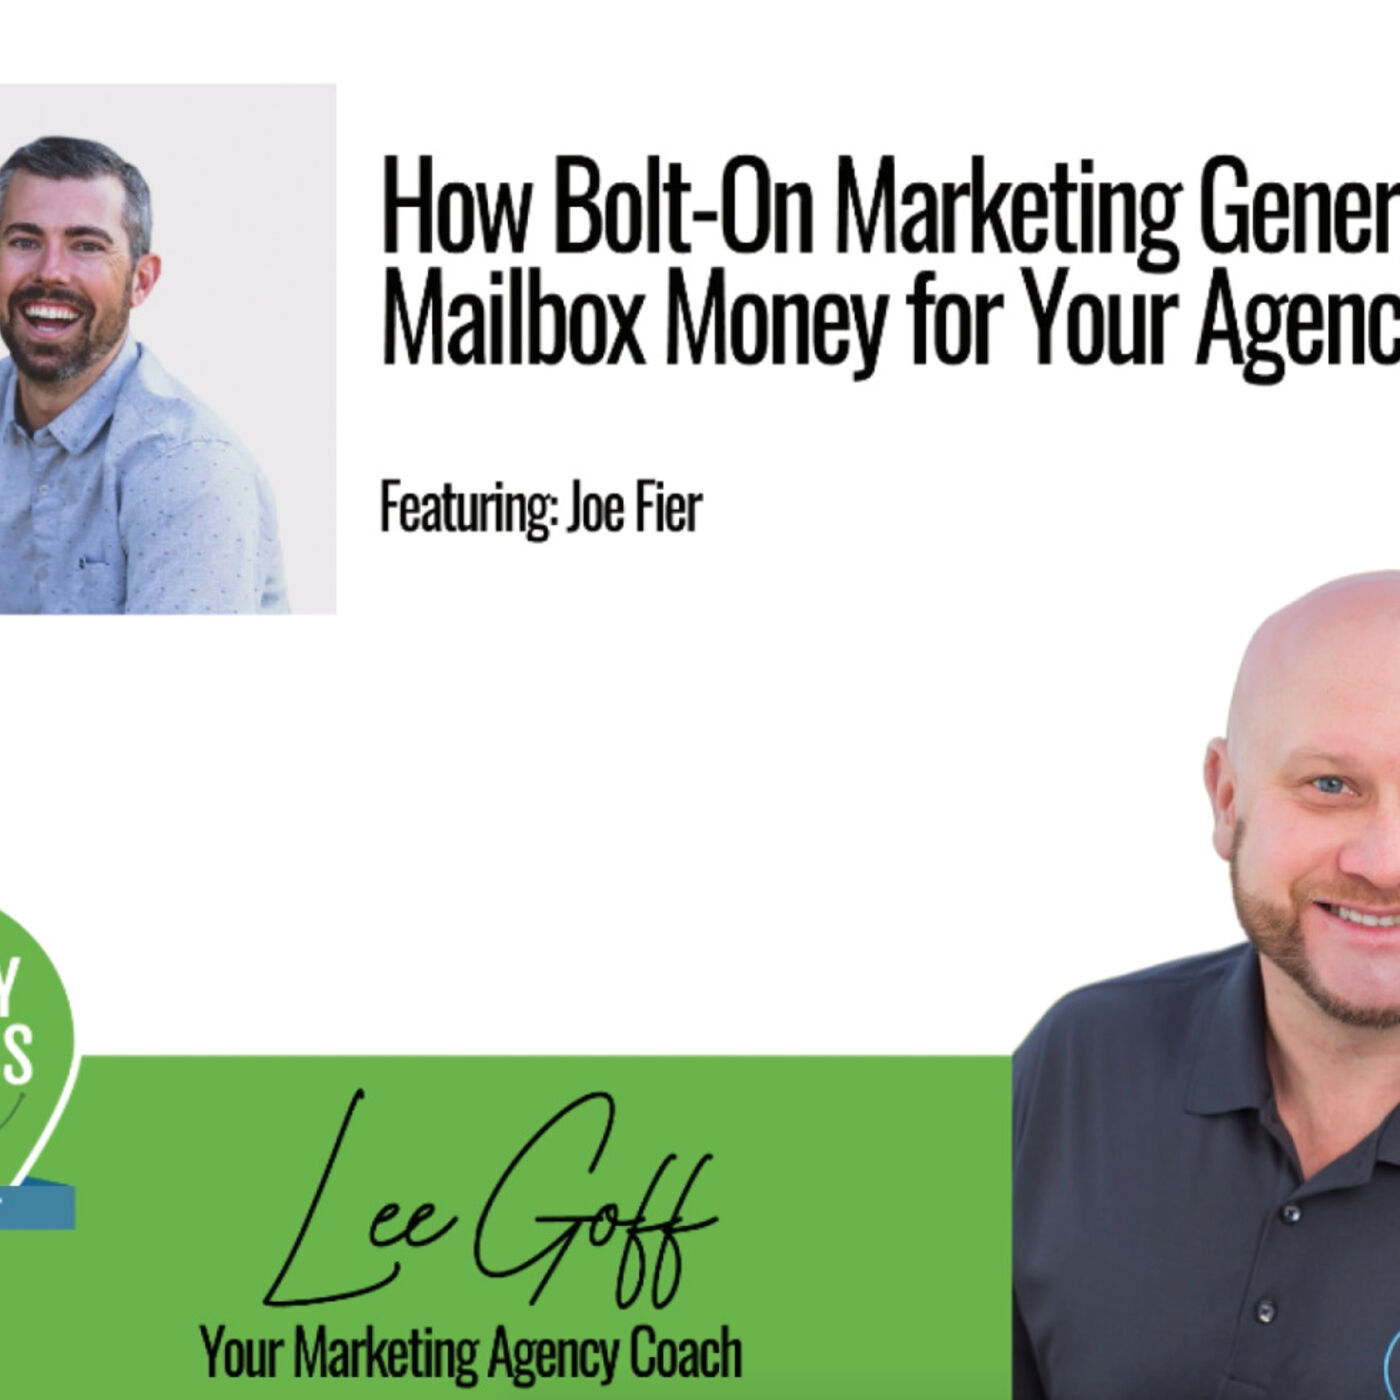 Joe Fier – How Bolt On Marketing Creates Mailbox Money For Your Agency - GPS Podcast - Lee Goff - Episode 13